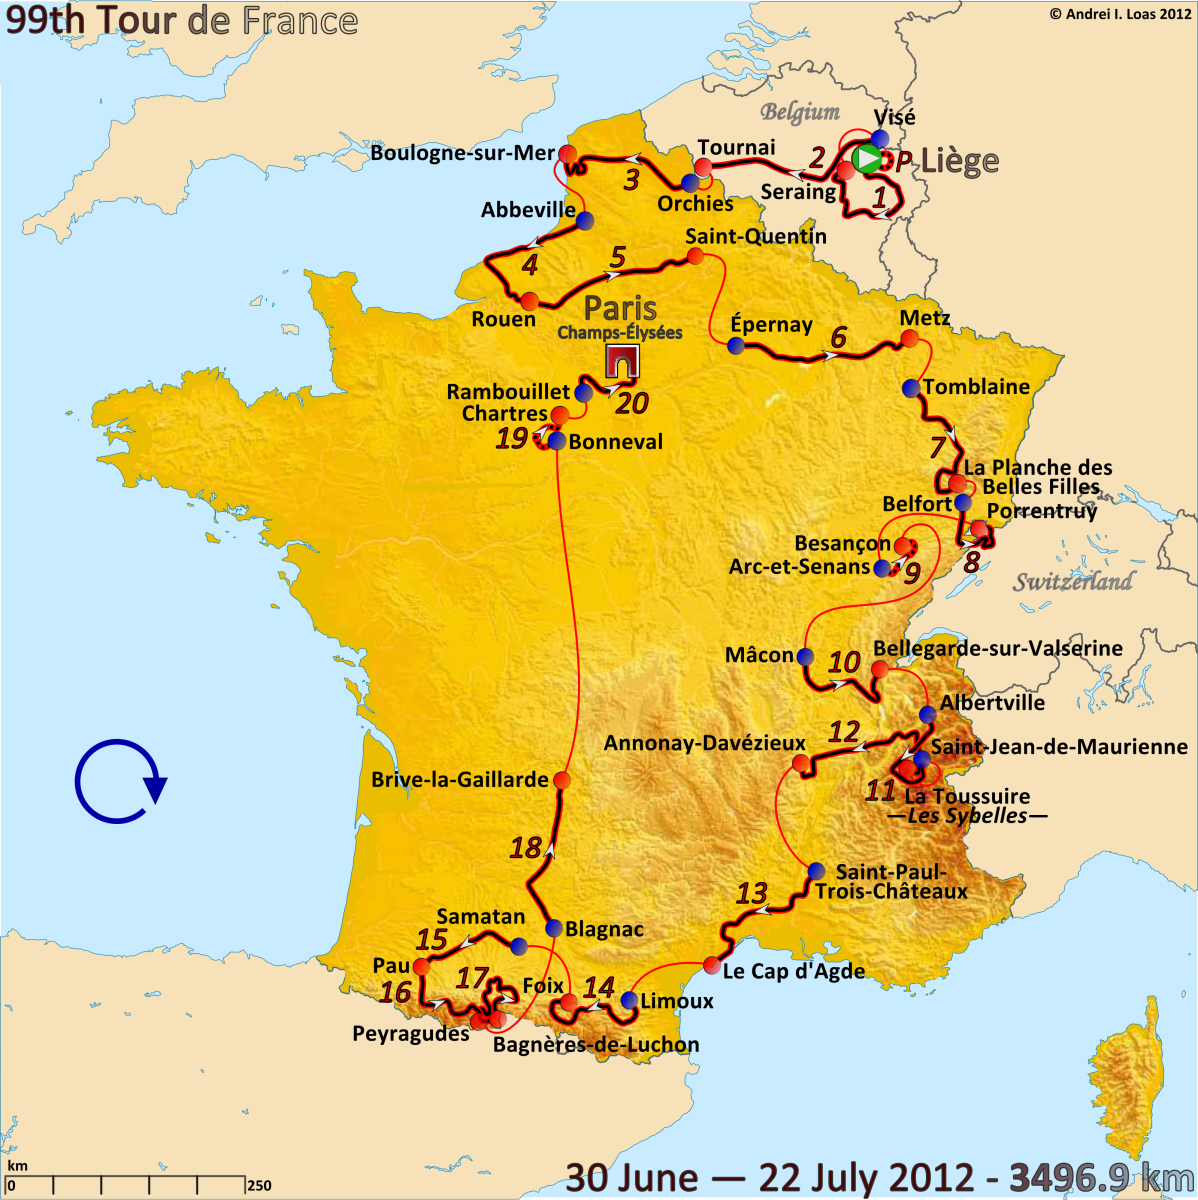 Map of the 2012 Tour de France route